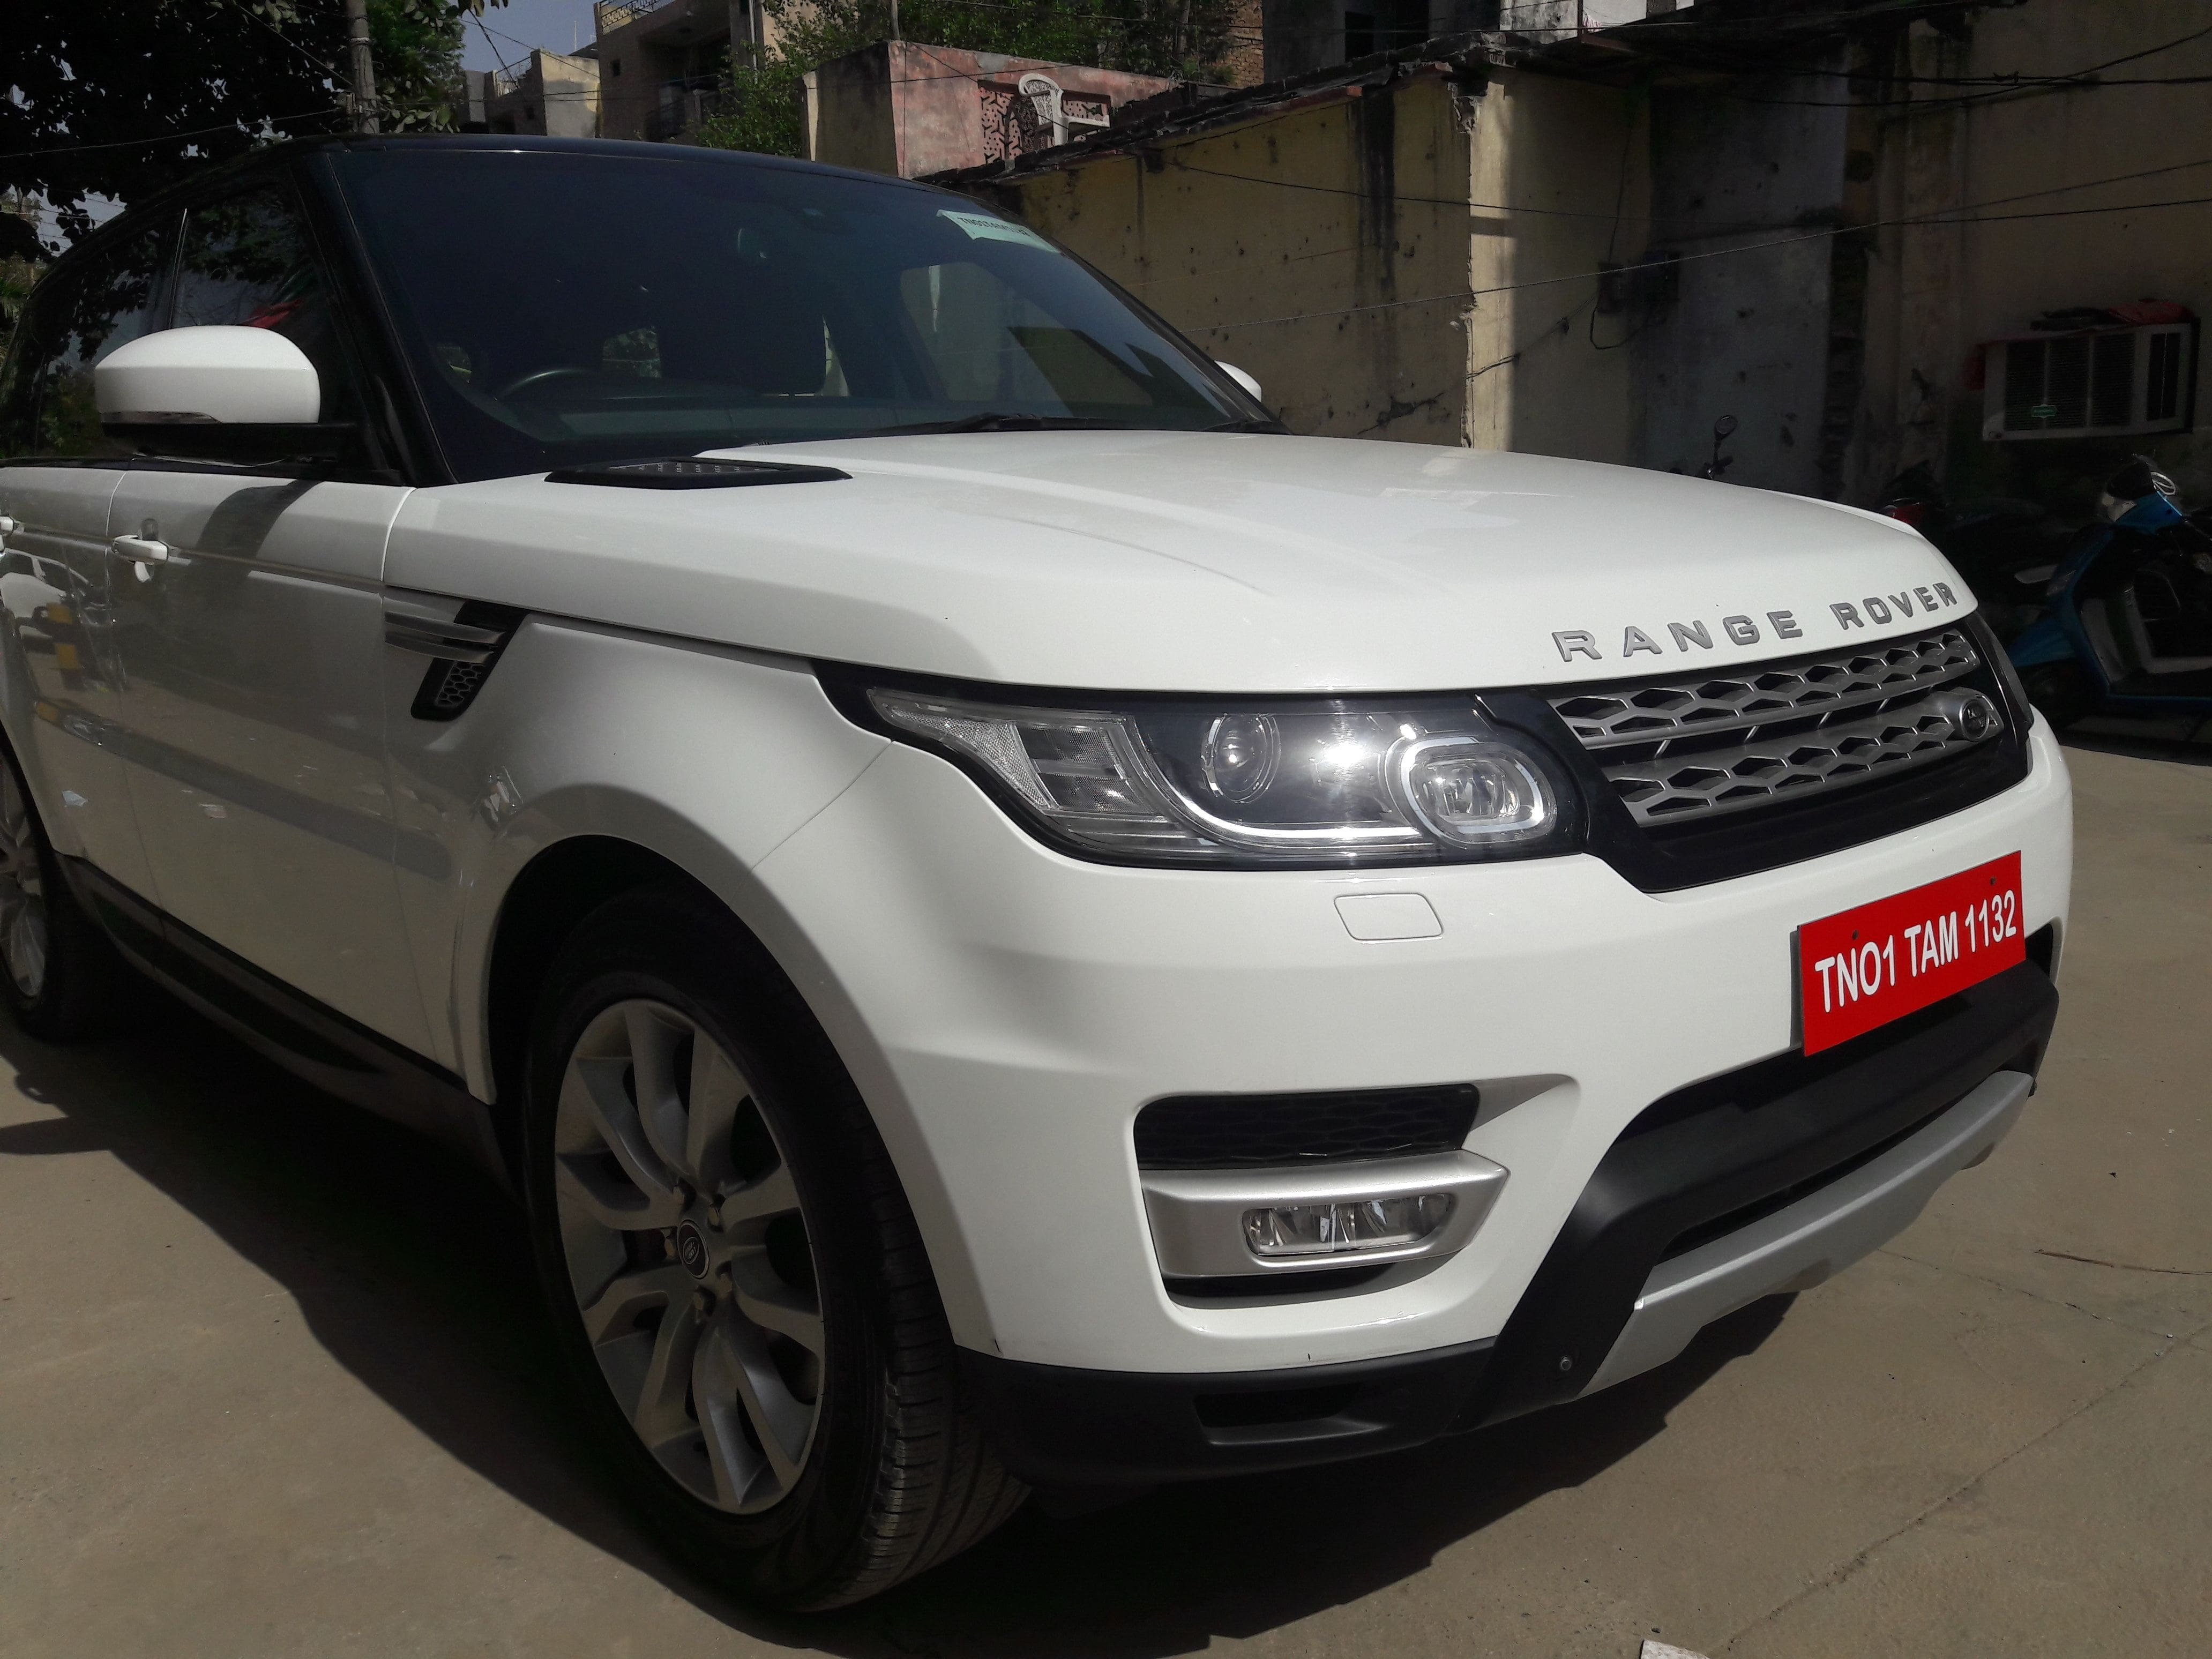 land rover white product discovery landrover rovers img gs motors used horse